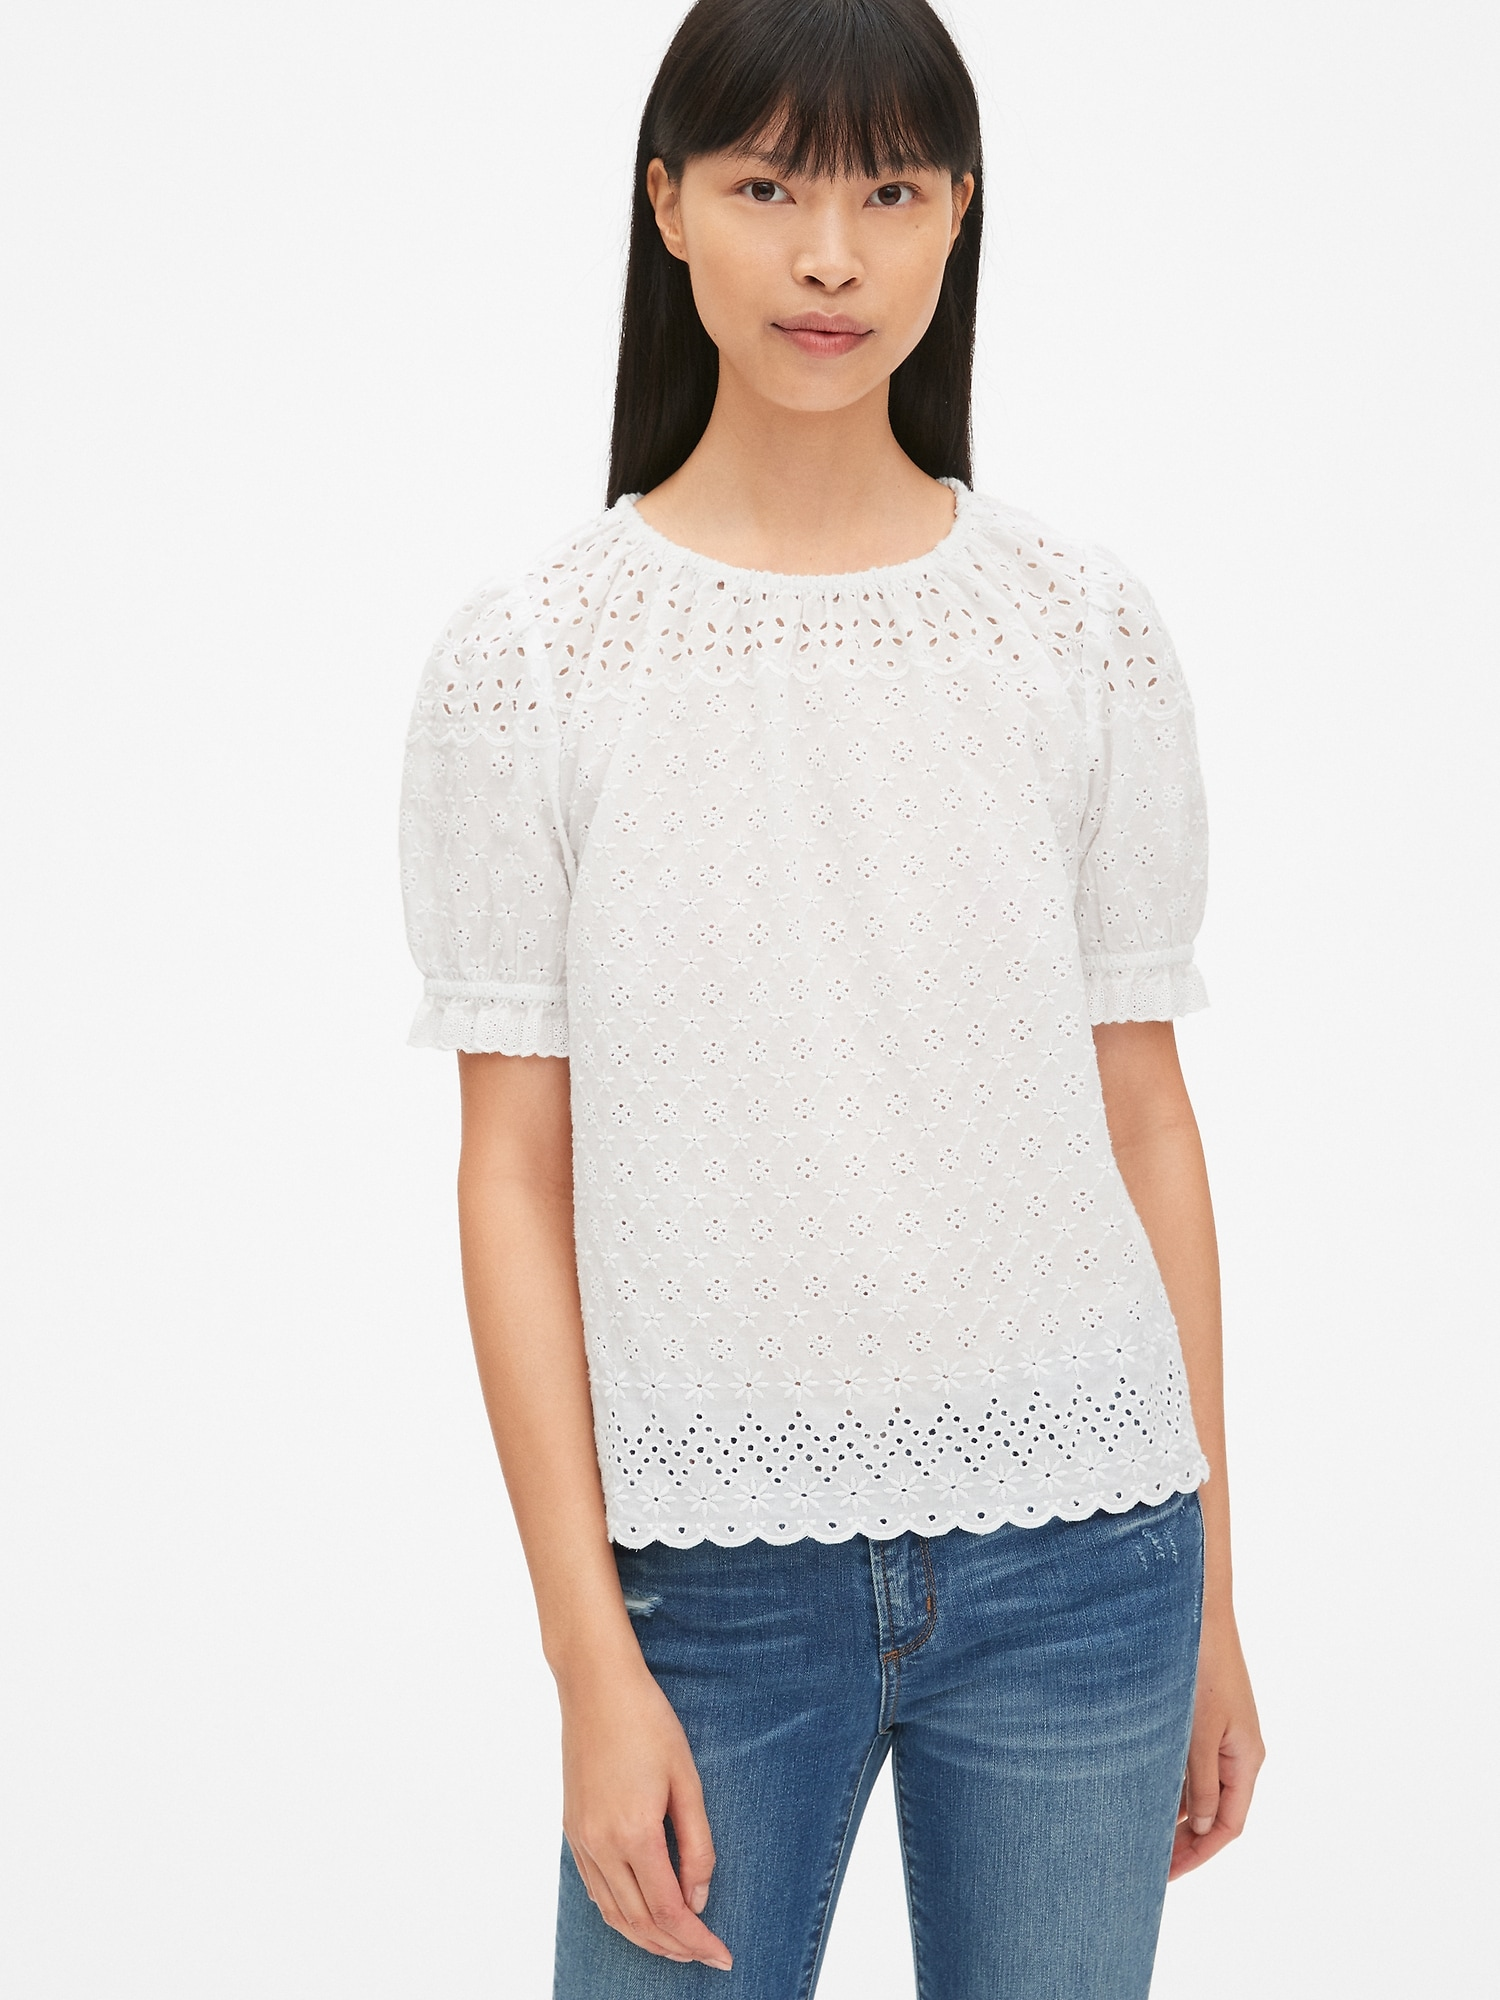 8b43bb82fec6b6 Eyelet Embroidered Puff Sleeve Top